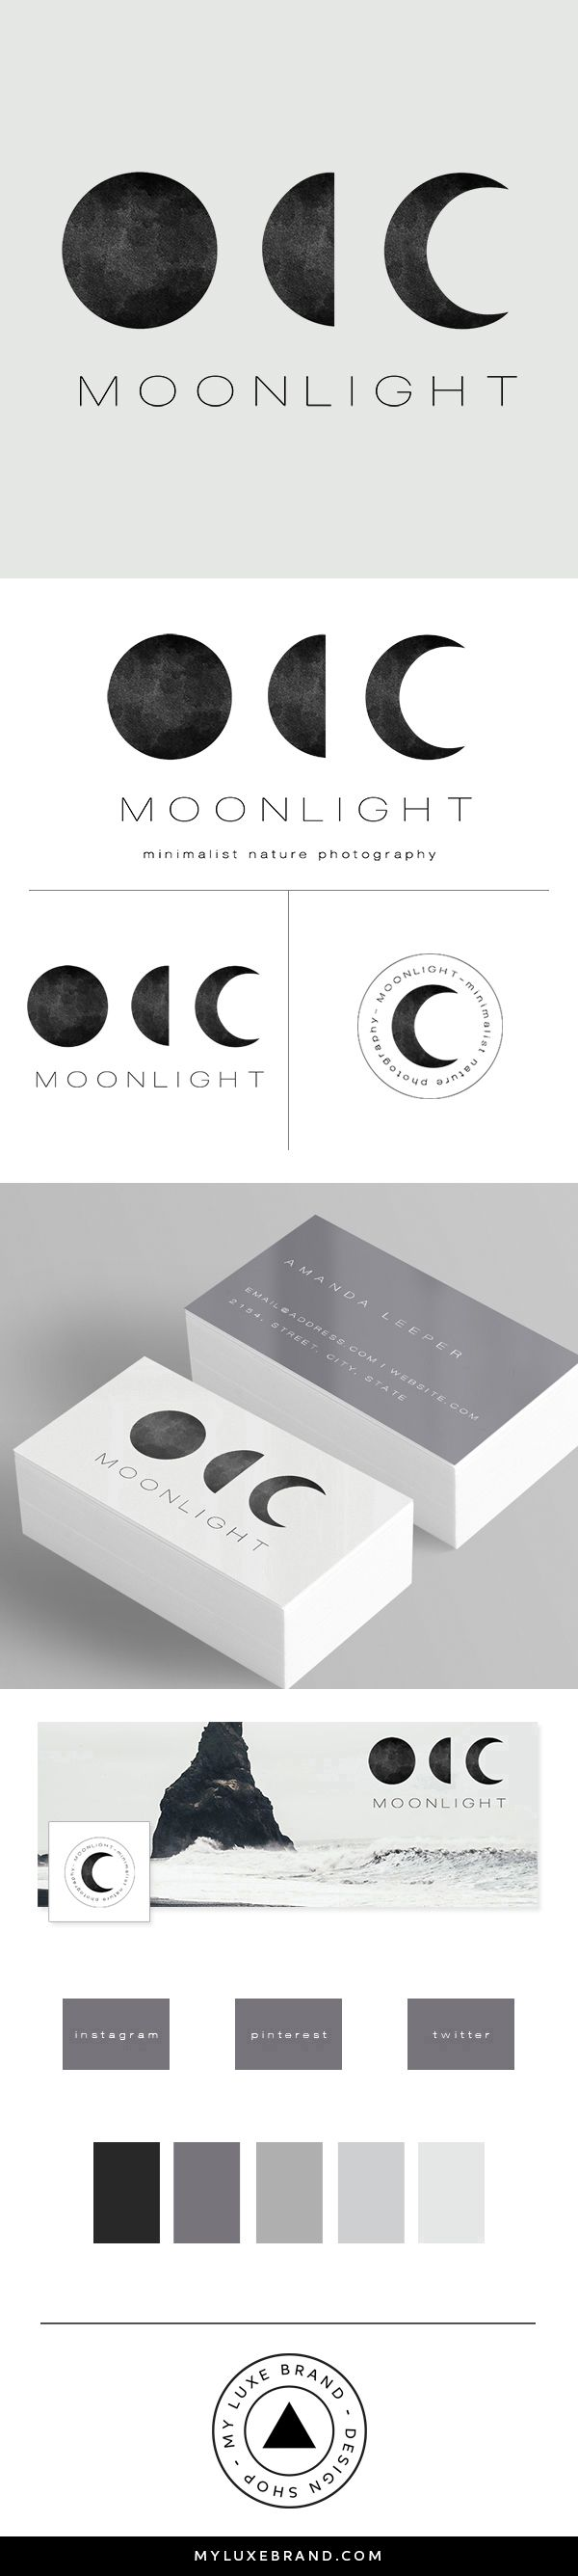 Moonlight Photographer Premade Brand Launch (sold only once)   MY LUXE BRAND - Brand Design Shop   logo design, brand design, branding, premade brand, premade logo